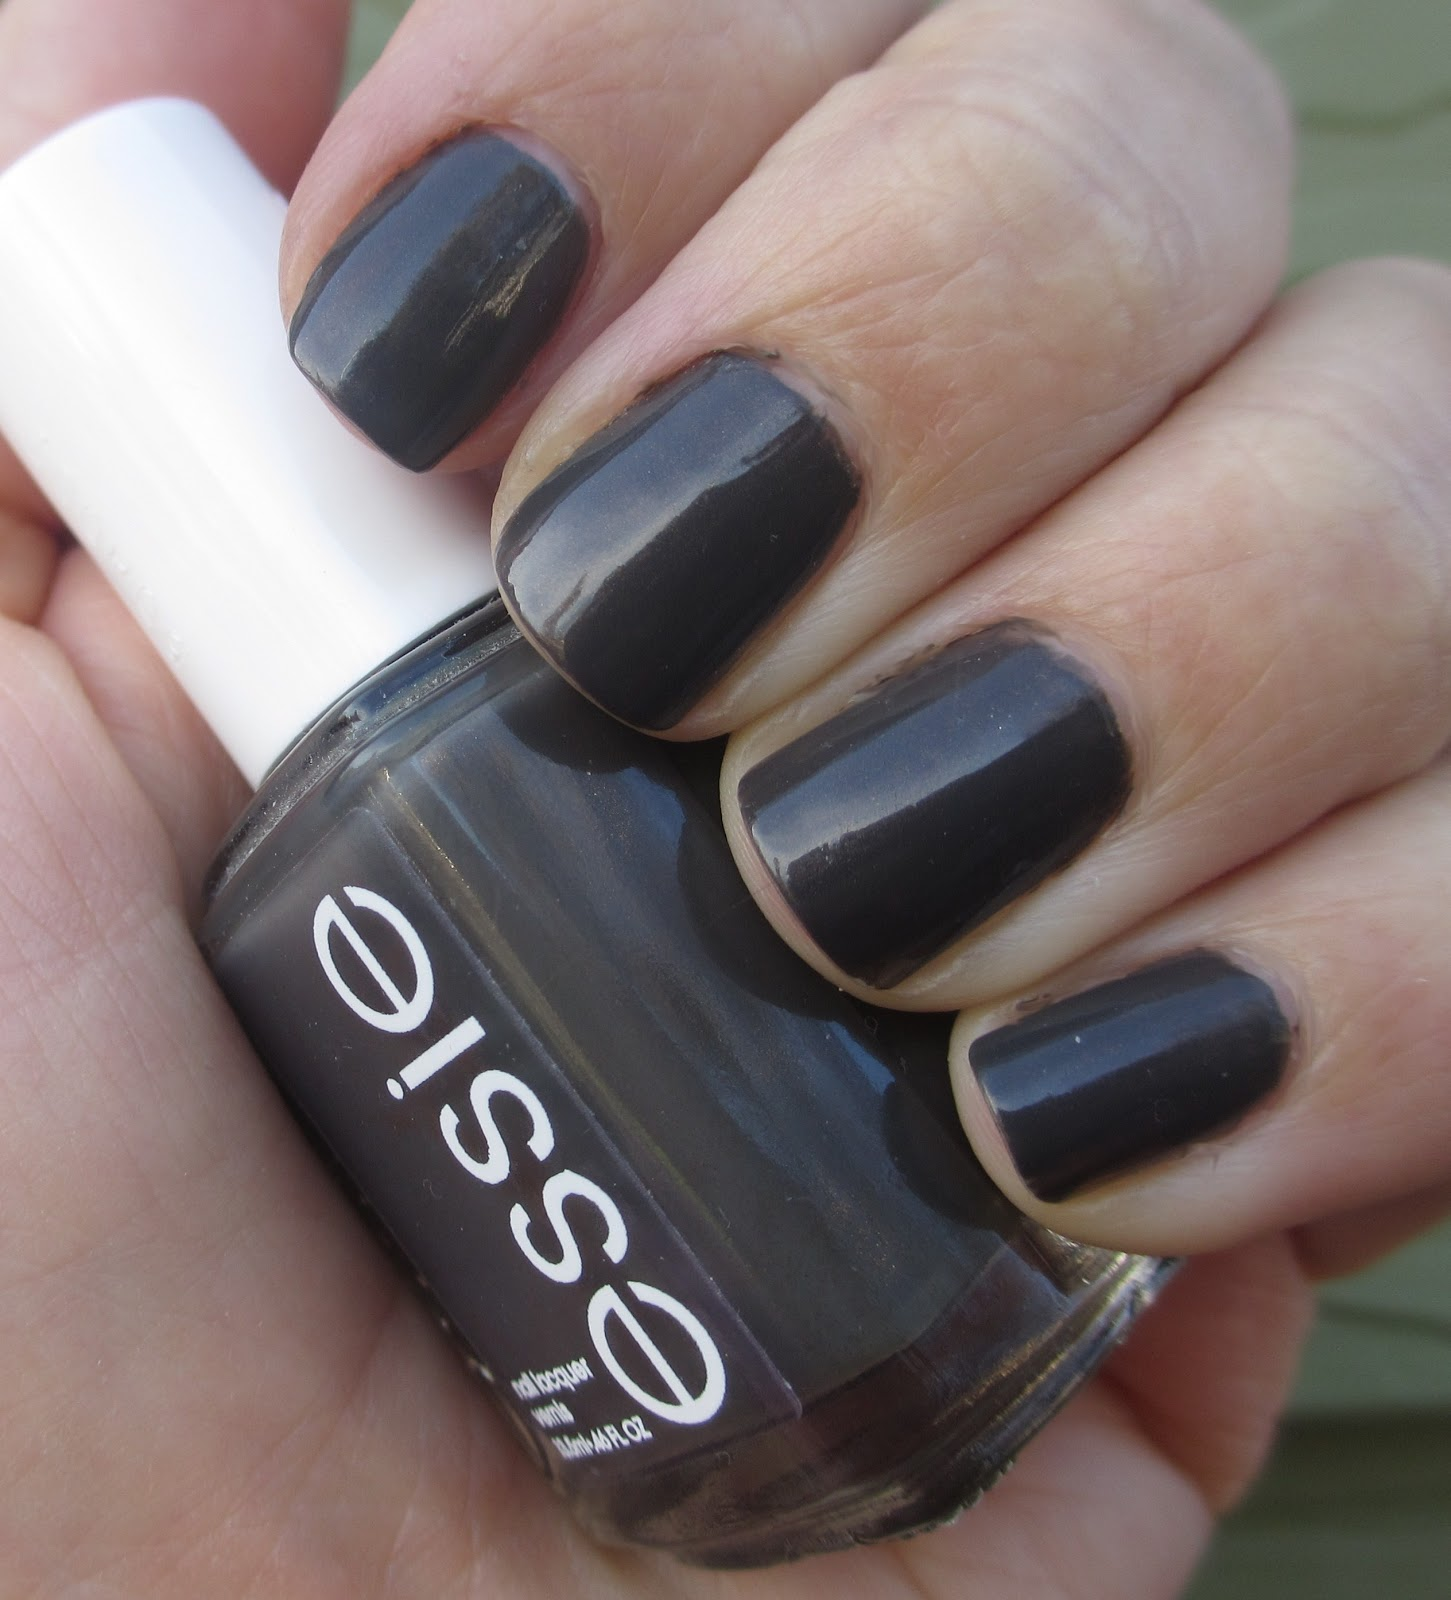 Cha Cha Cakes Nails: Essie Armed and Ready